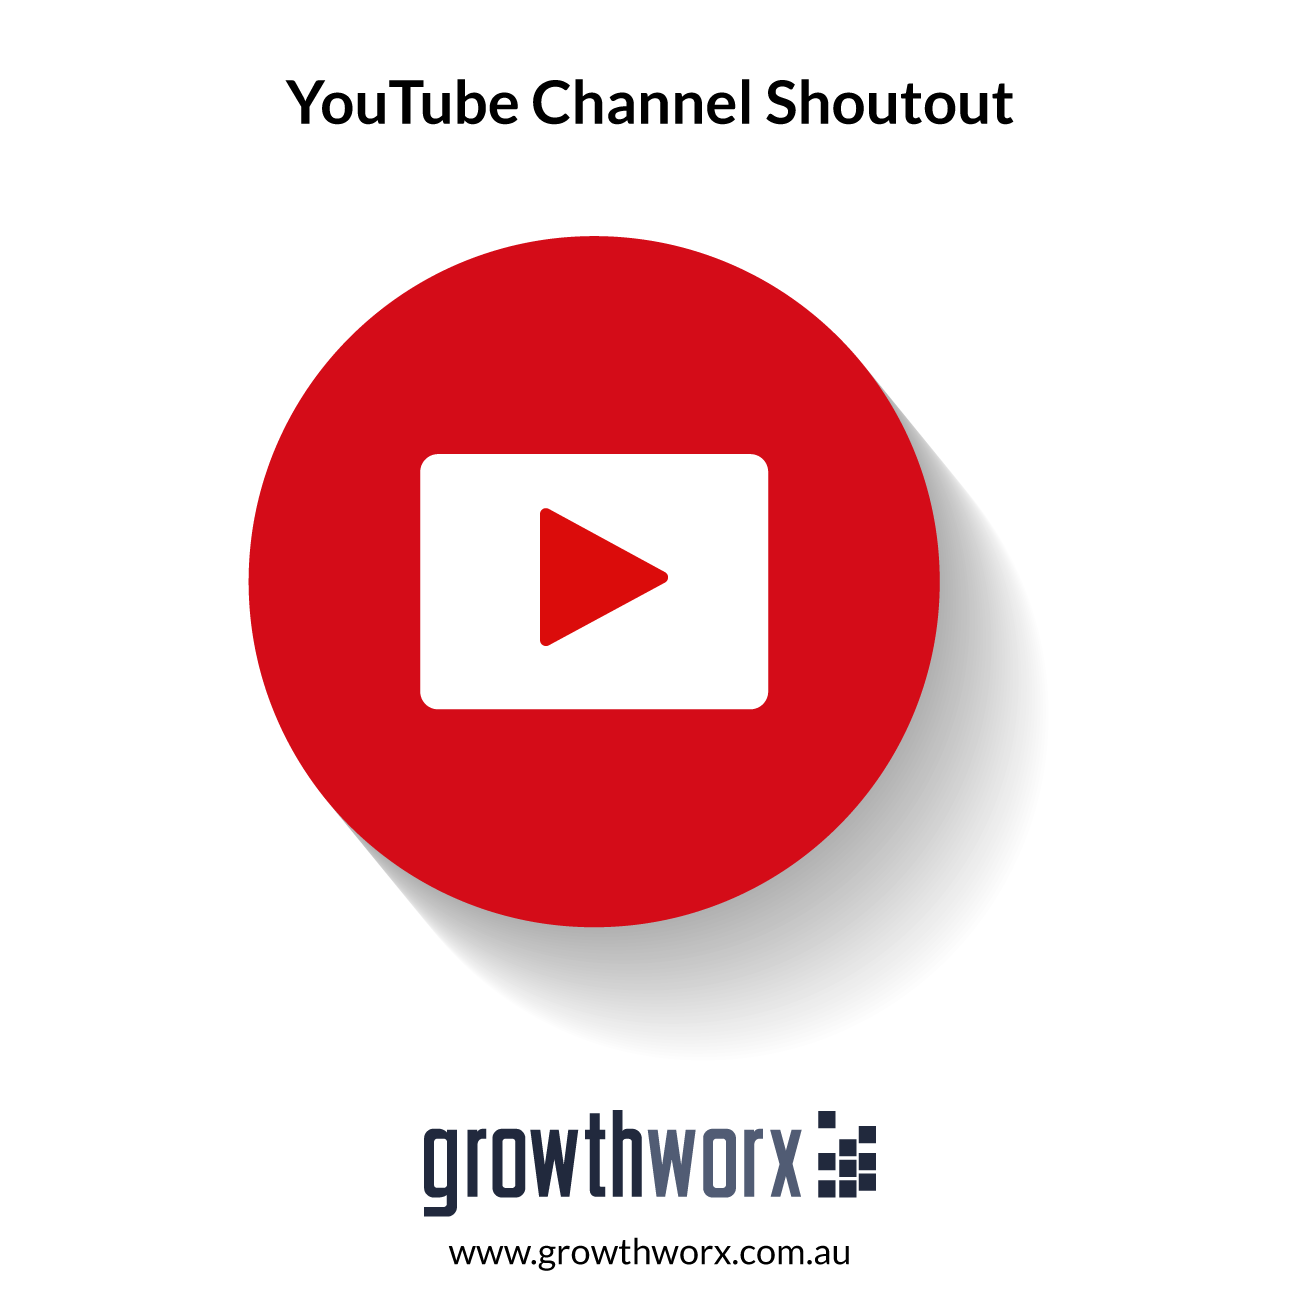 We will do youtube channel shout out to over 500k audience to get subscriber 1